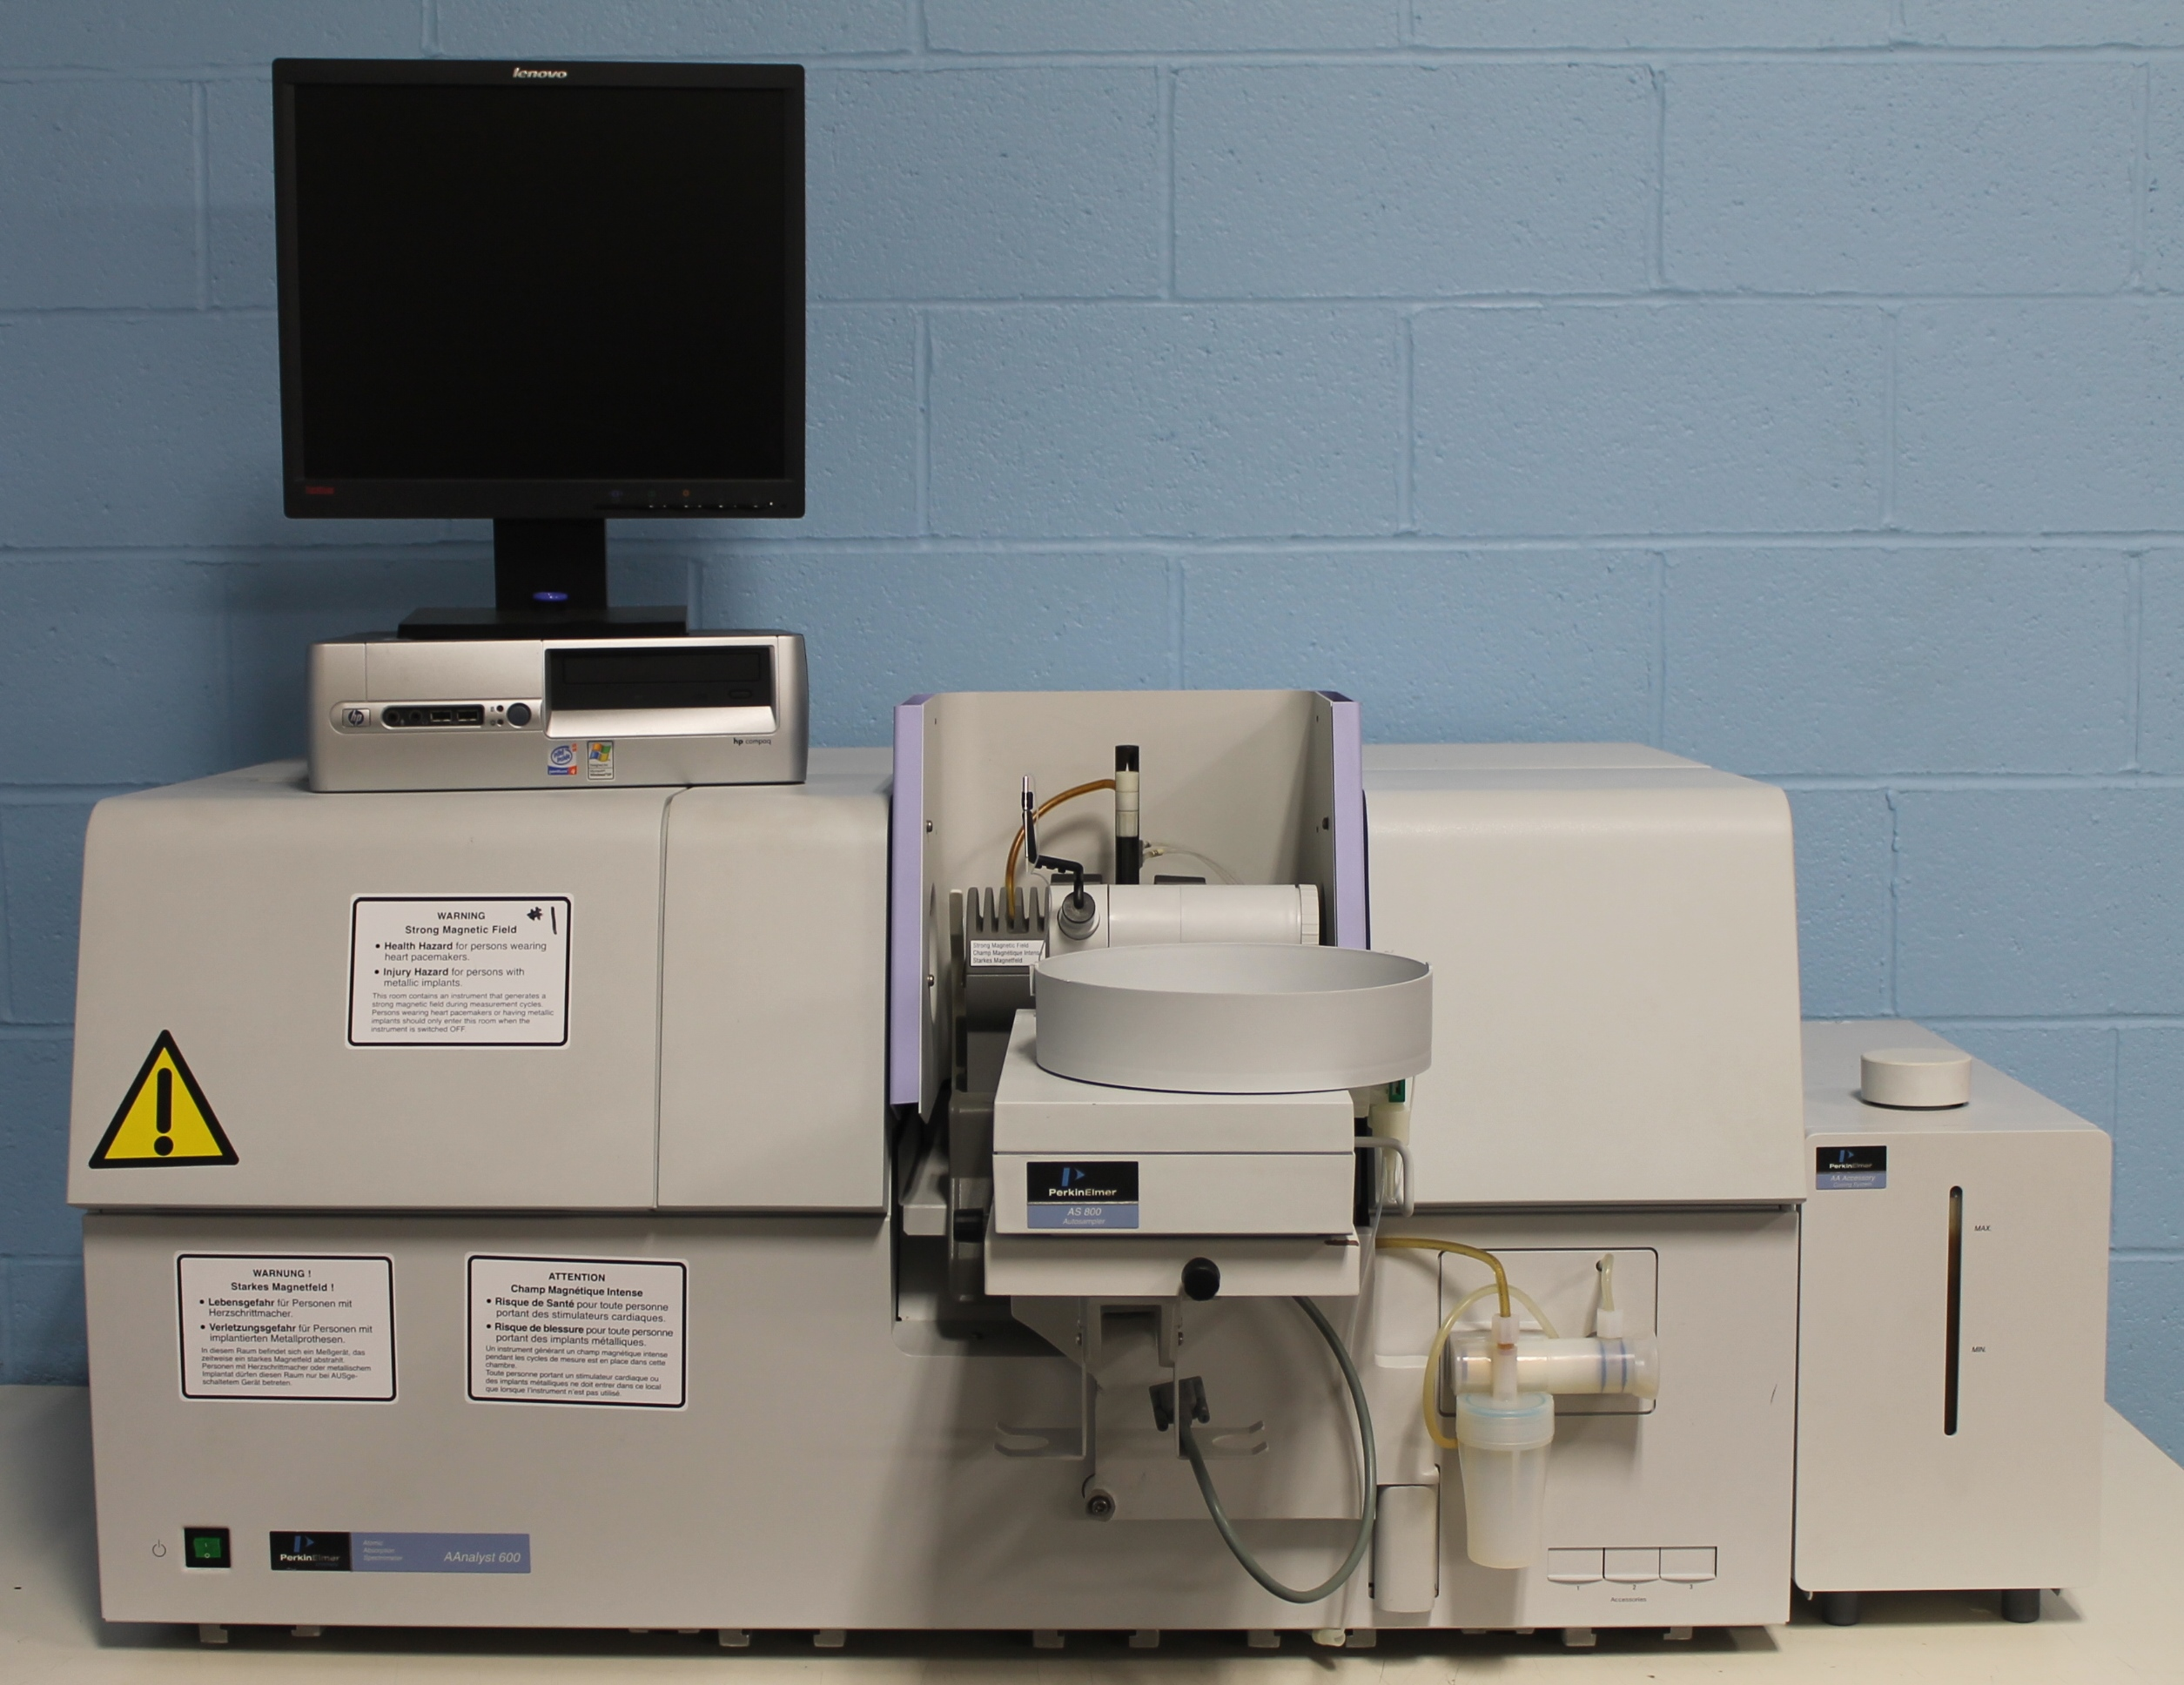 Perkin Elmer AAnalyst 600 Atomic Absorption Spectrometer Image